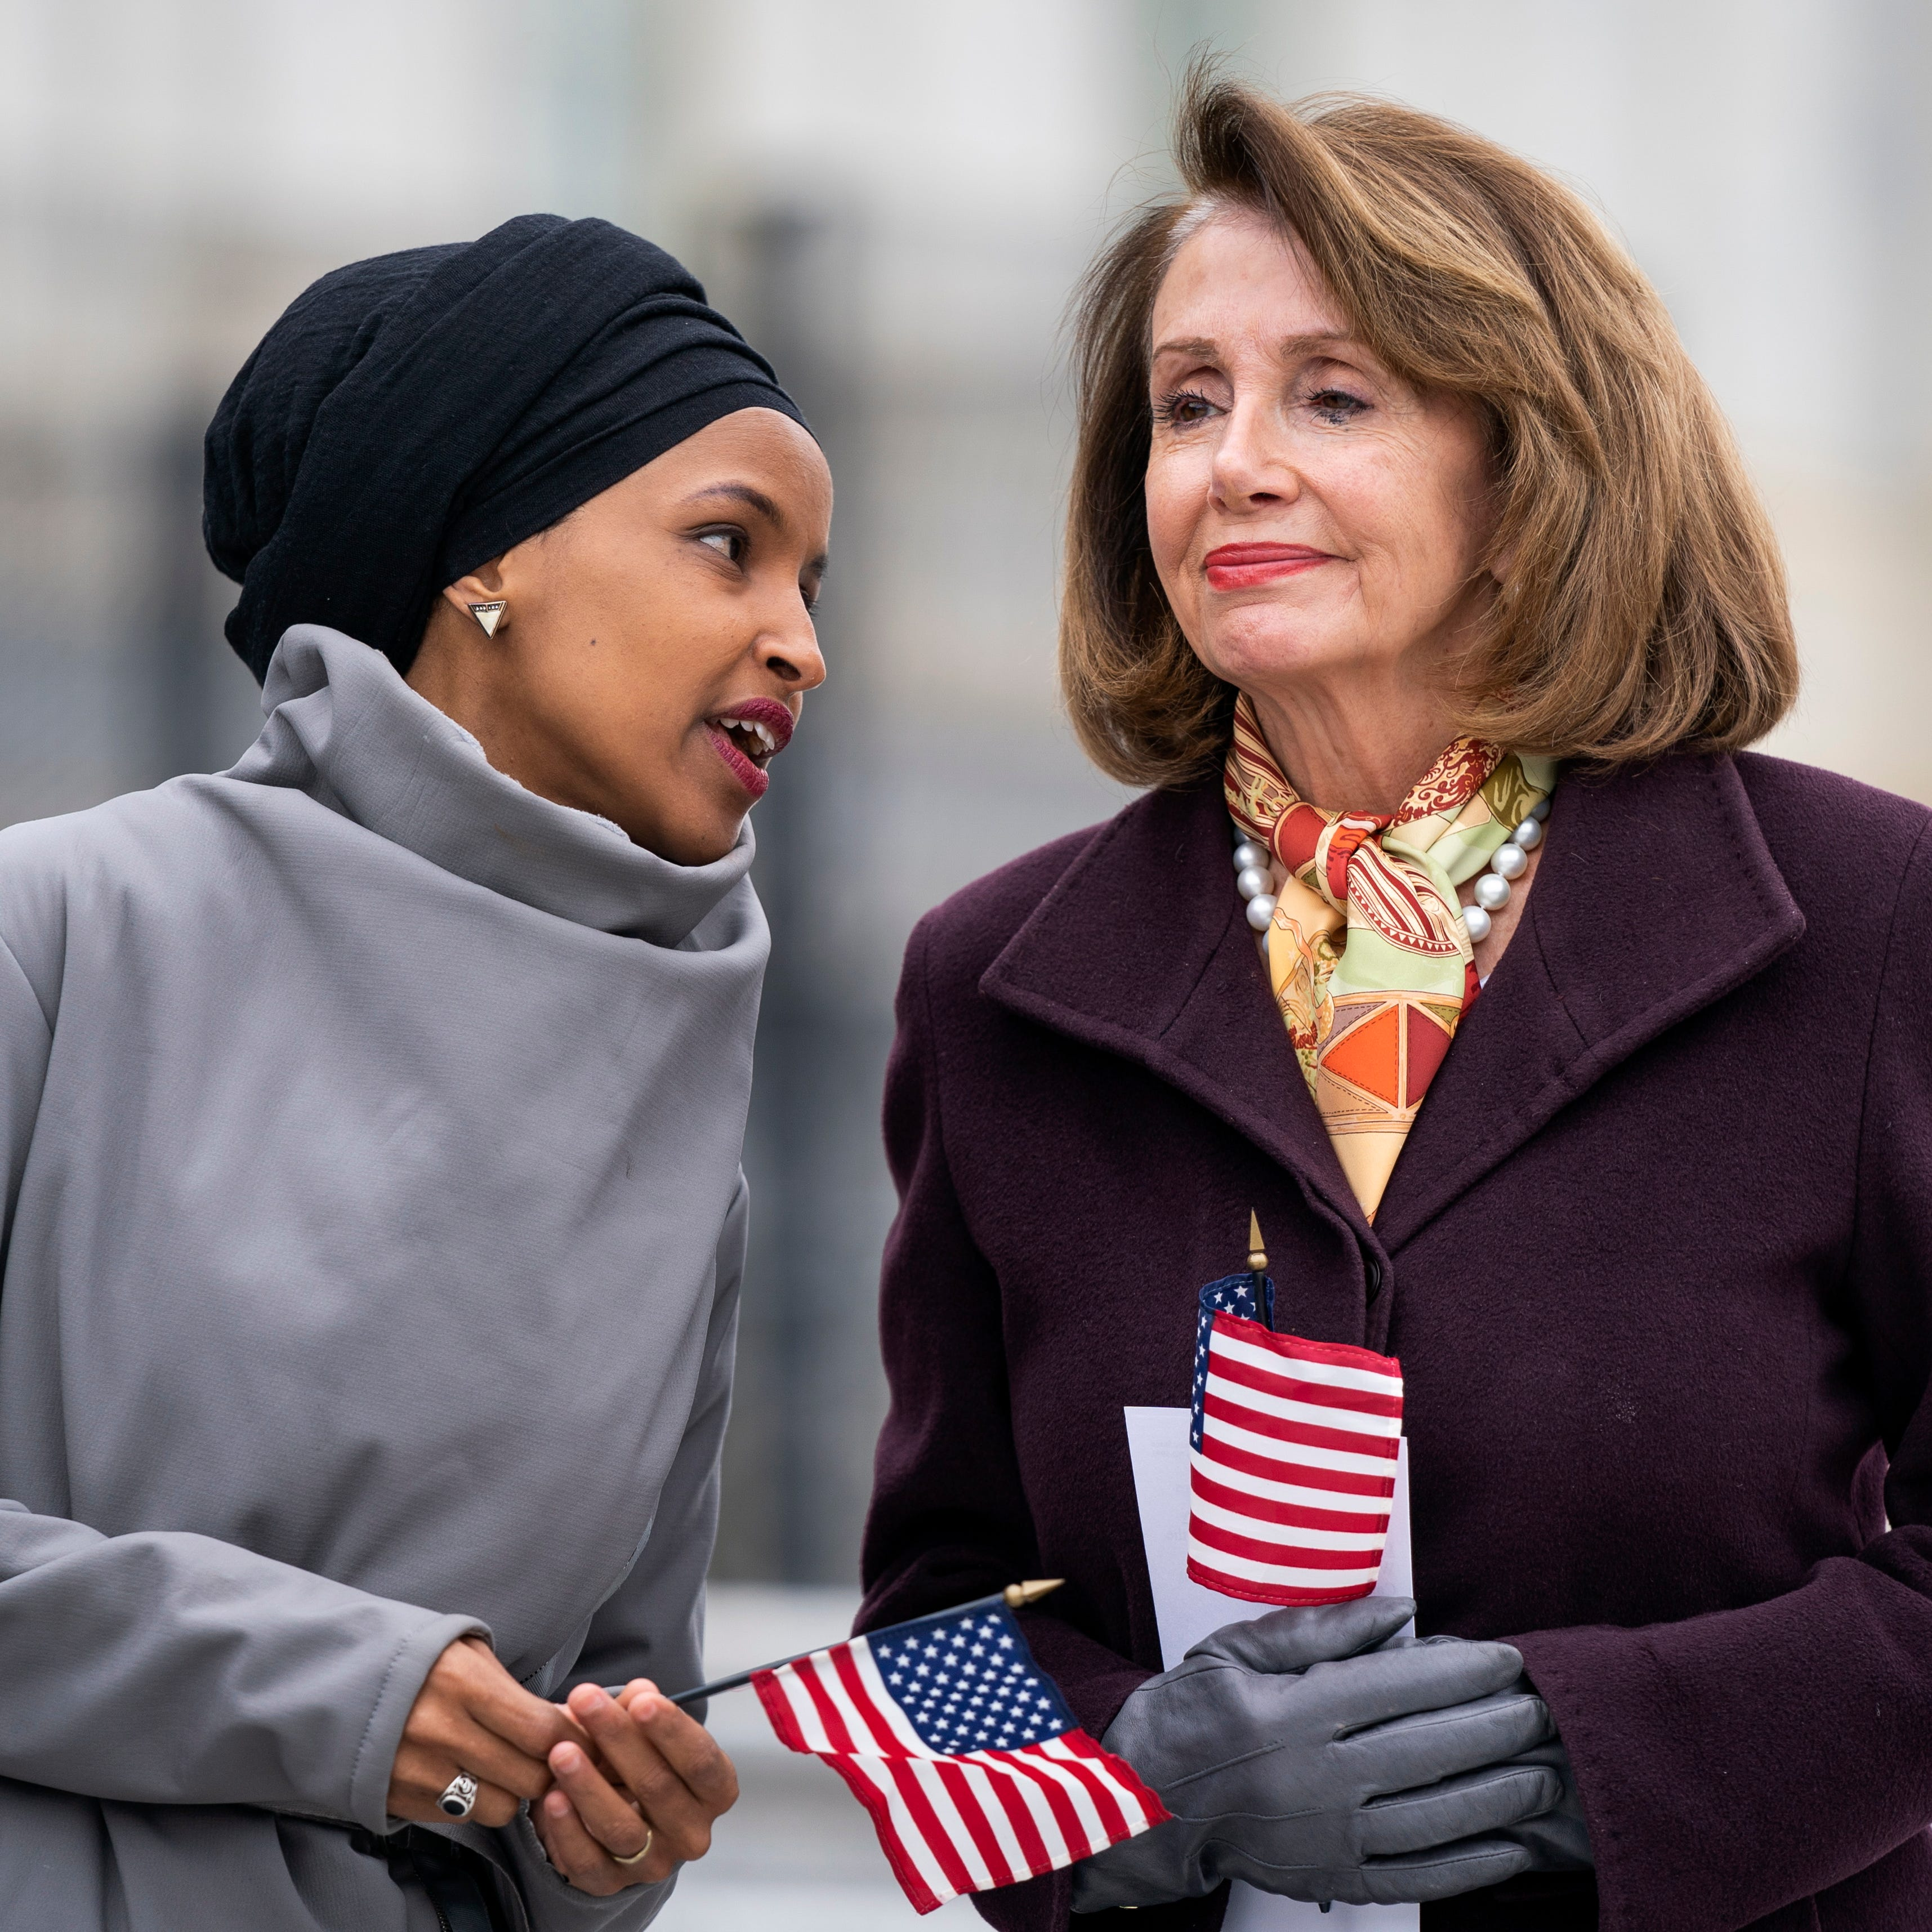 Rep. Ilhan Omar, D-Minn., and House Speaker Nancy Pelosi, D-Calif., attend a media event to push for campaign finance reform outside the U.S. Capitol in Washington, March 8, 2019.